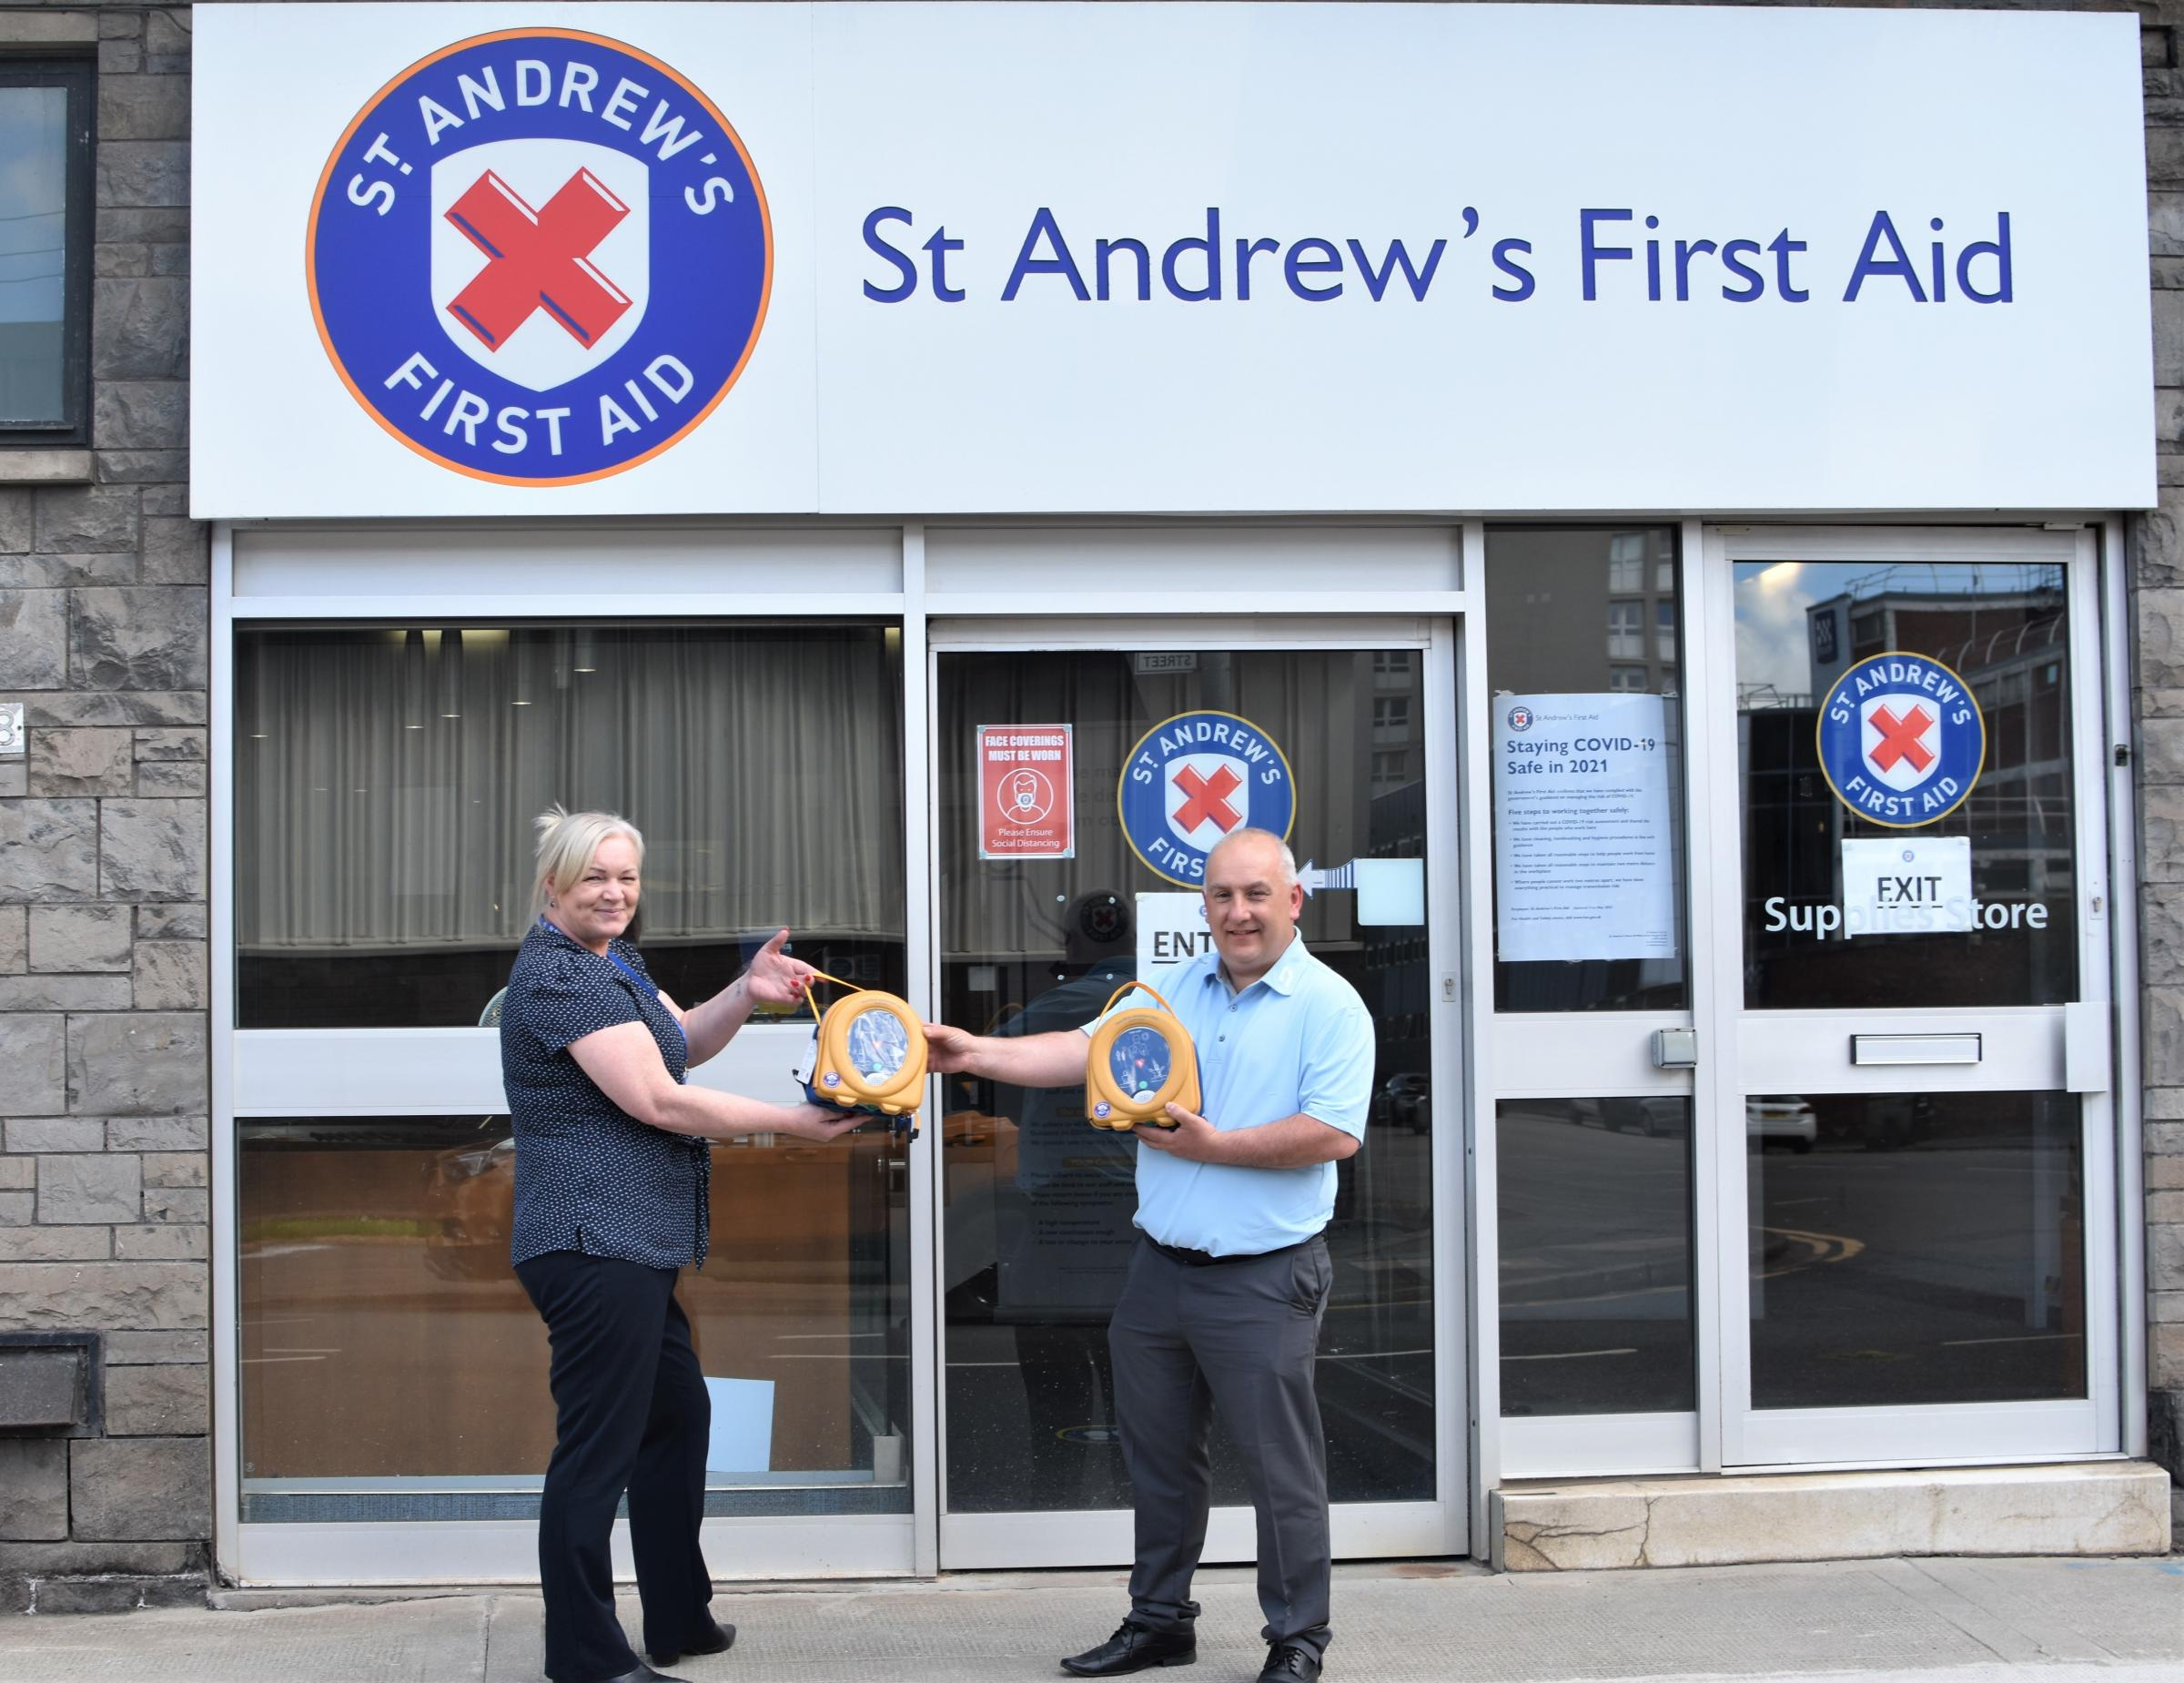 Defibrillators donated by St Andrew's First Aid to Keiran McDade Foundation